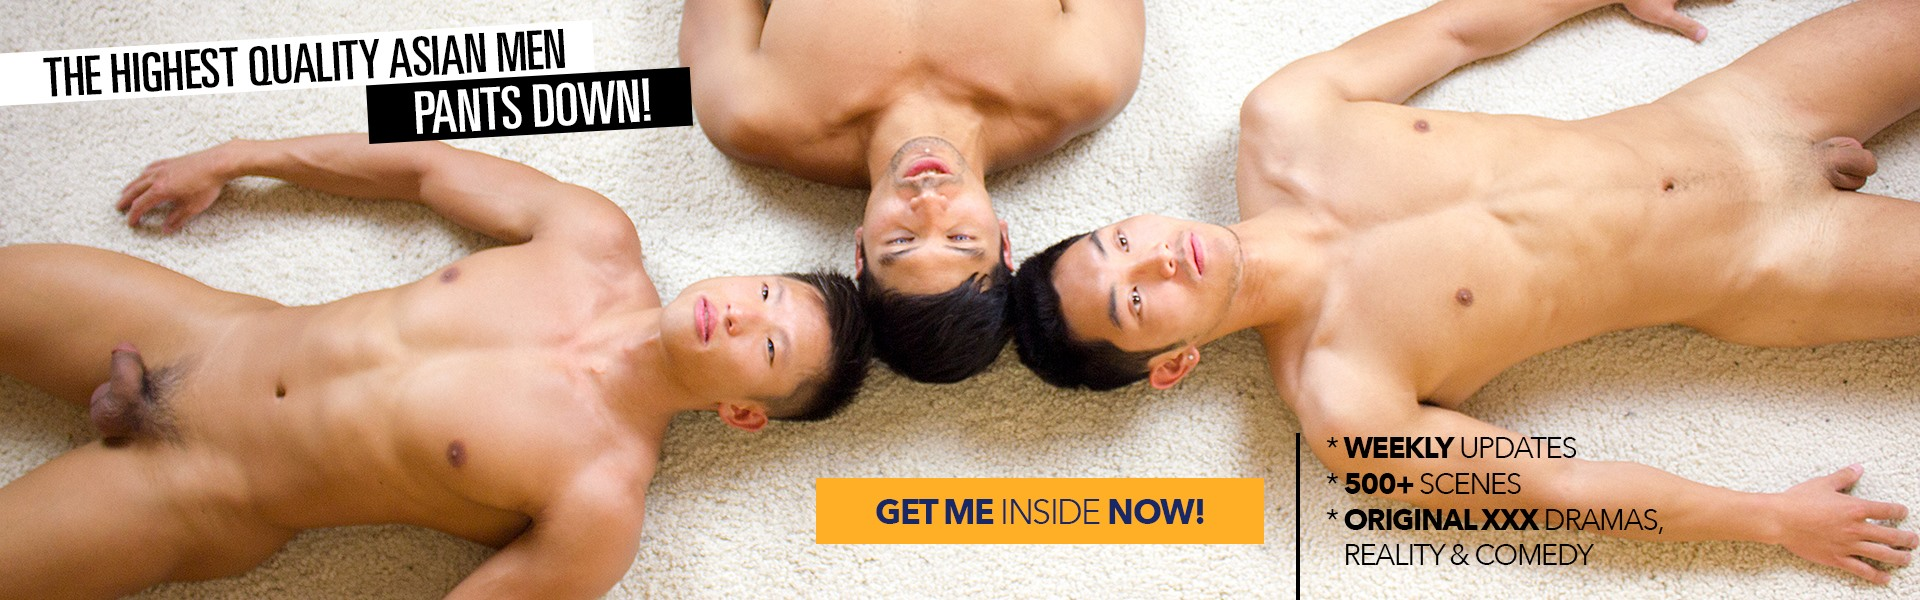 Peterfever - The Highest Quality Asian Men